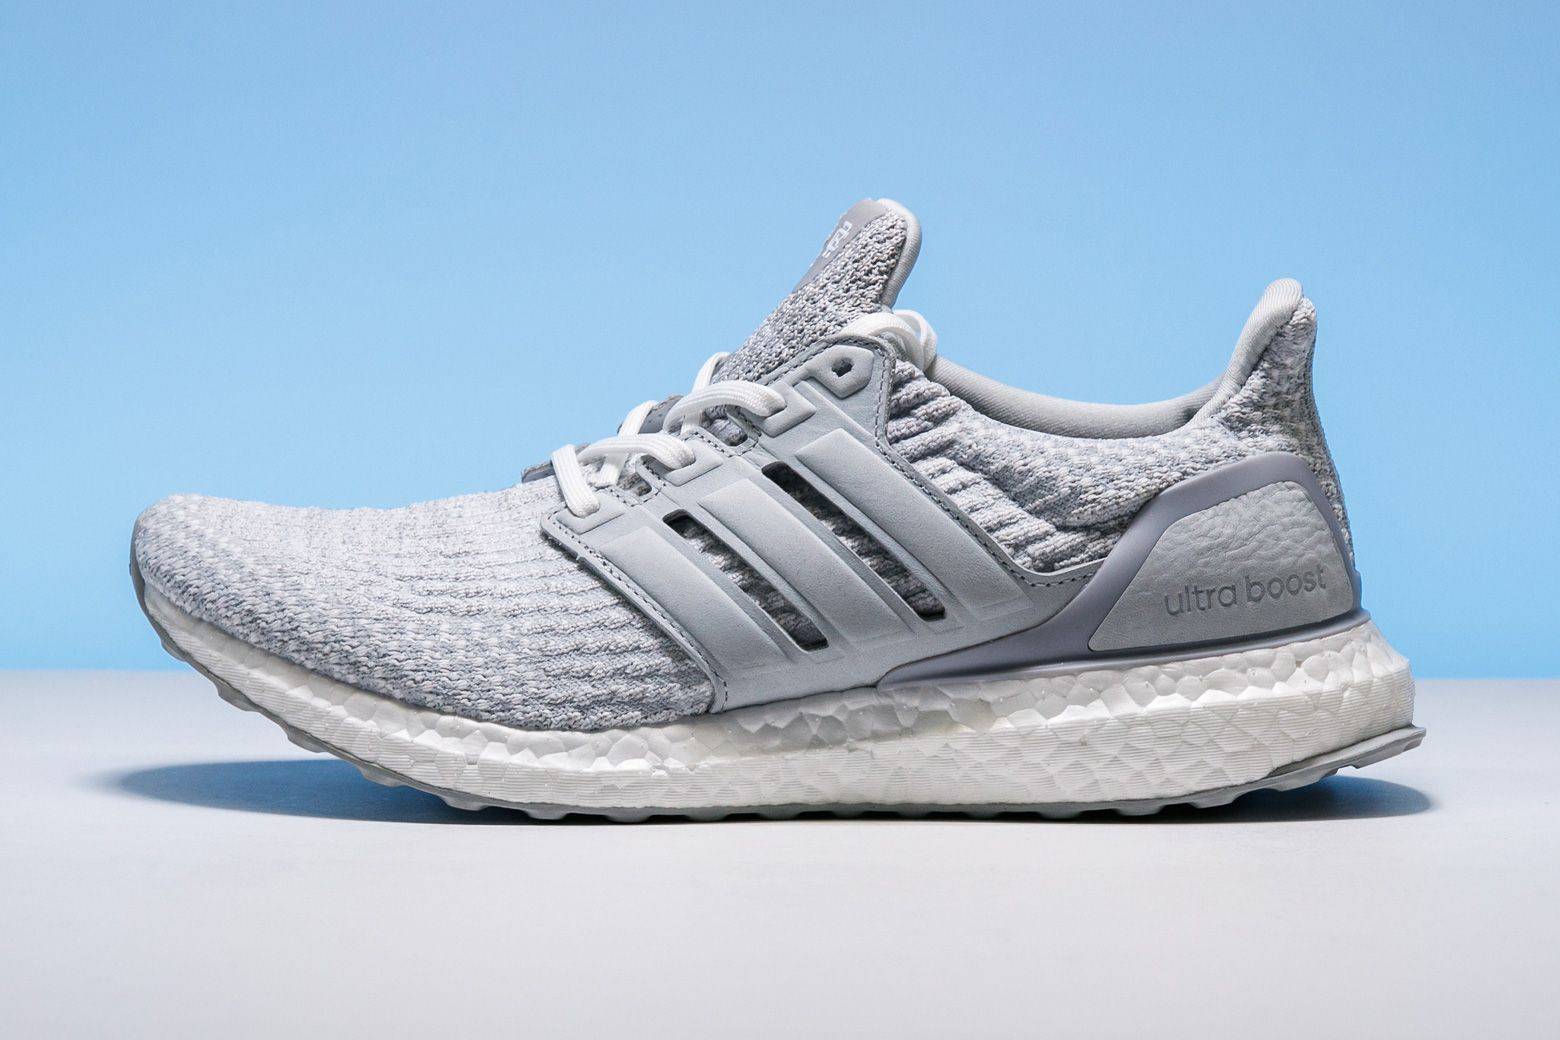 Adidas Ultra Boost 3.0 LTD 'LUXURY PACK' 'Leather Cage Gray